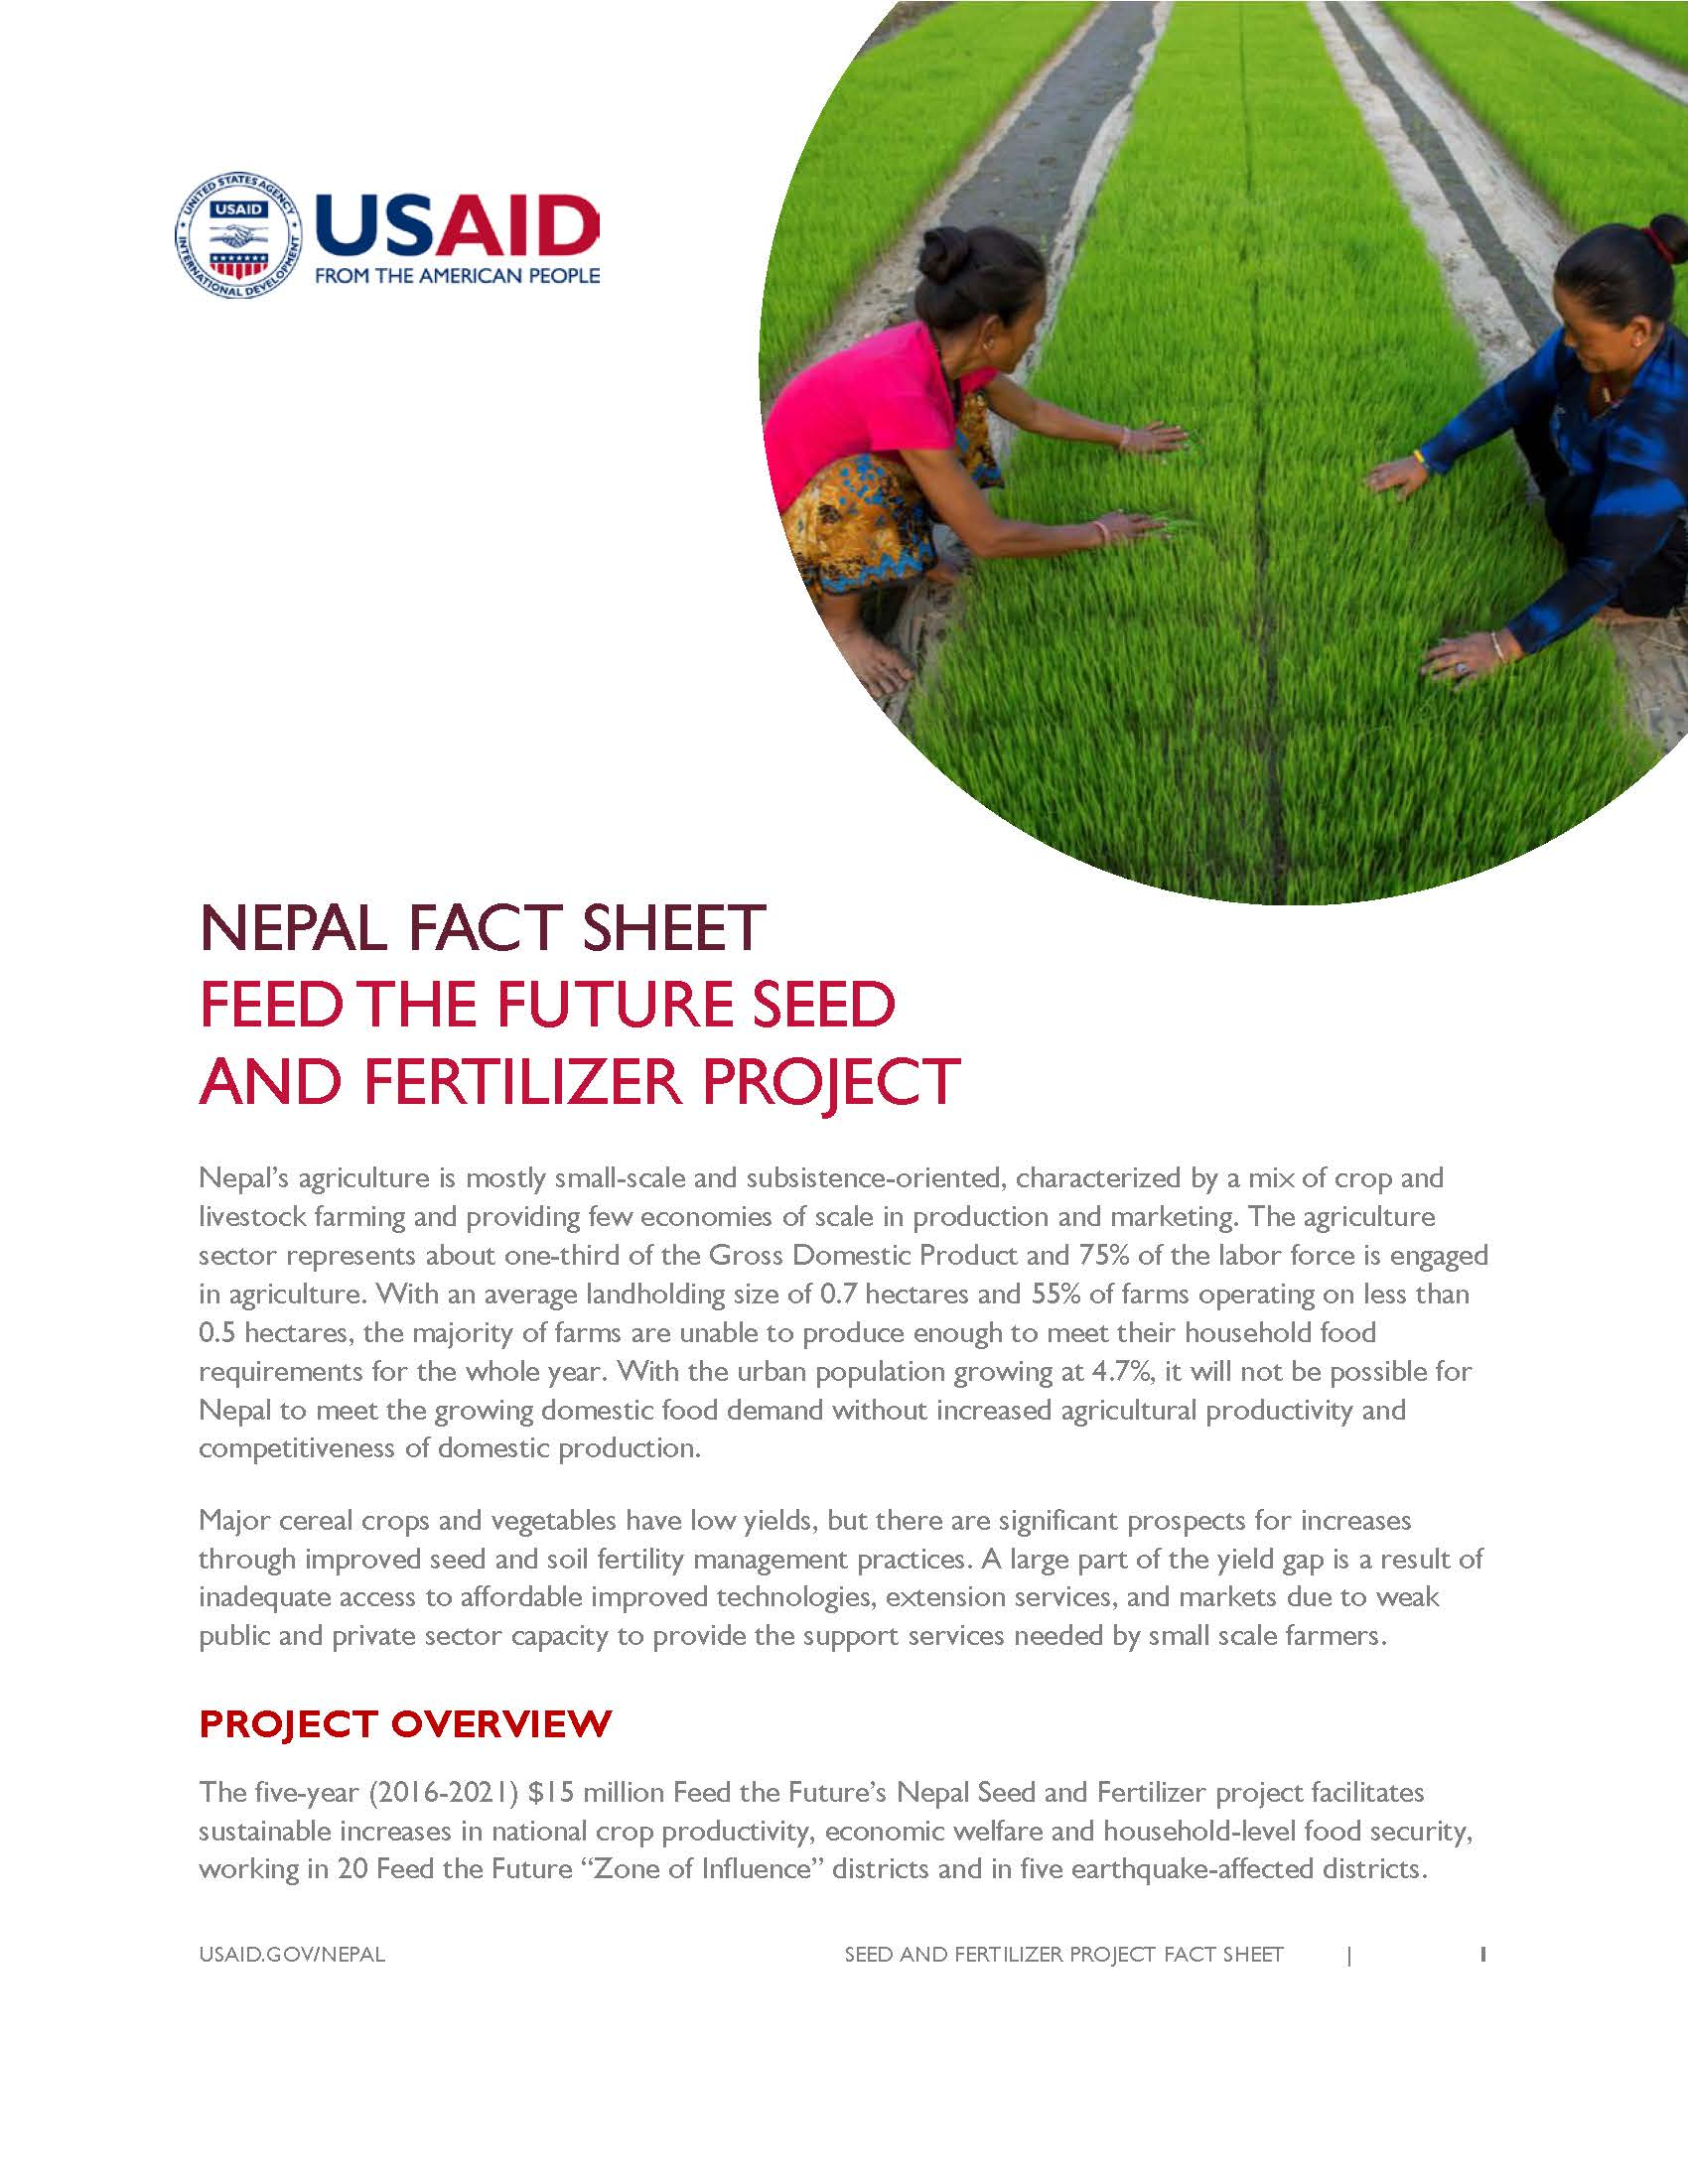 FACT SHEET : FEED THE FUTURE SEED  AND FERTILIZER PROJECT